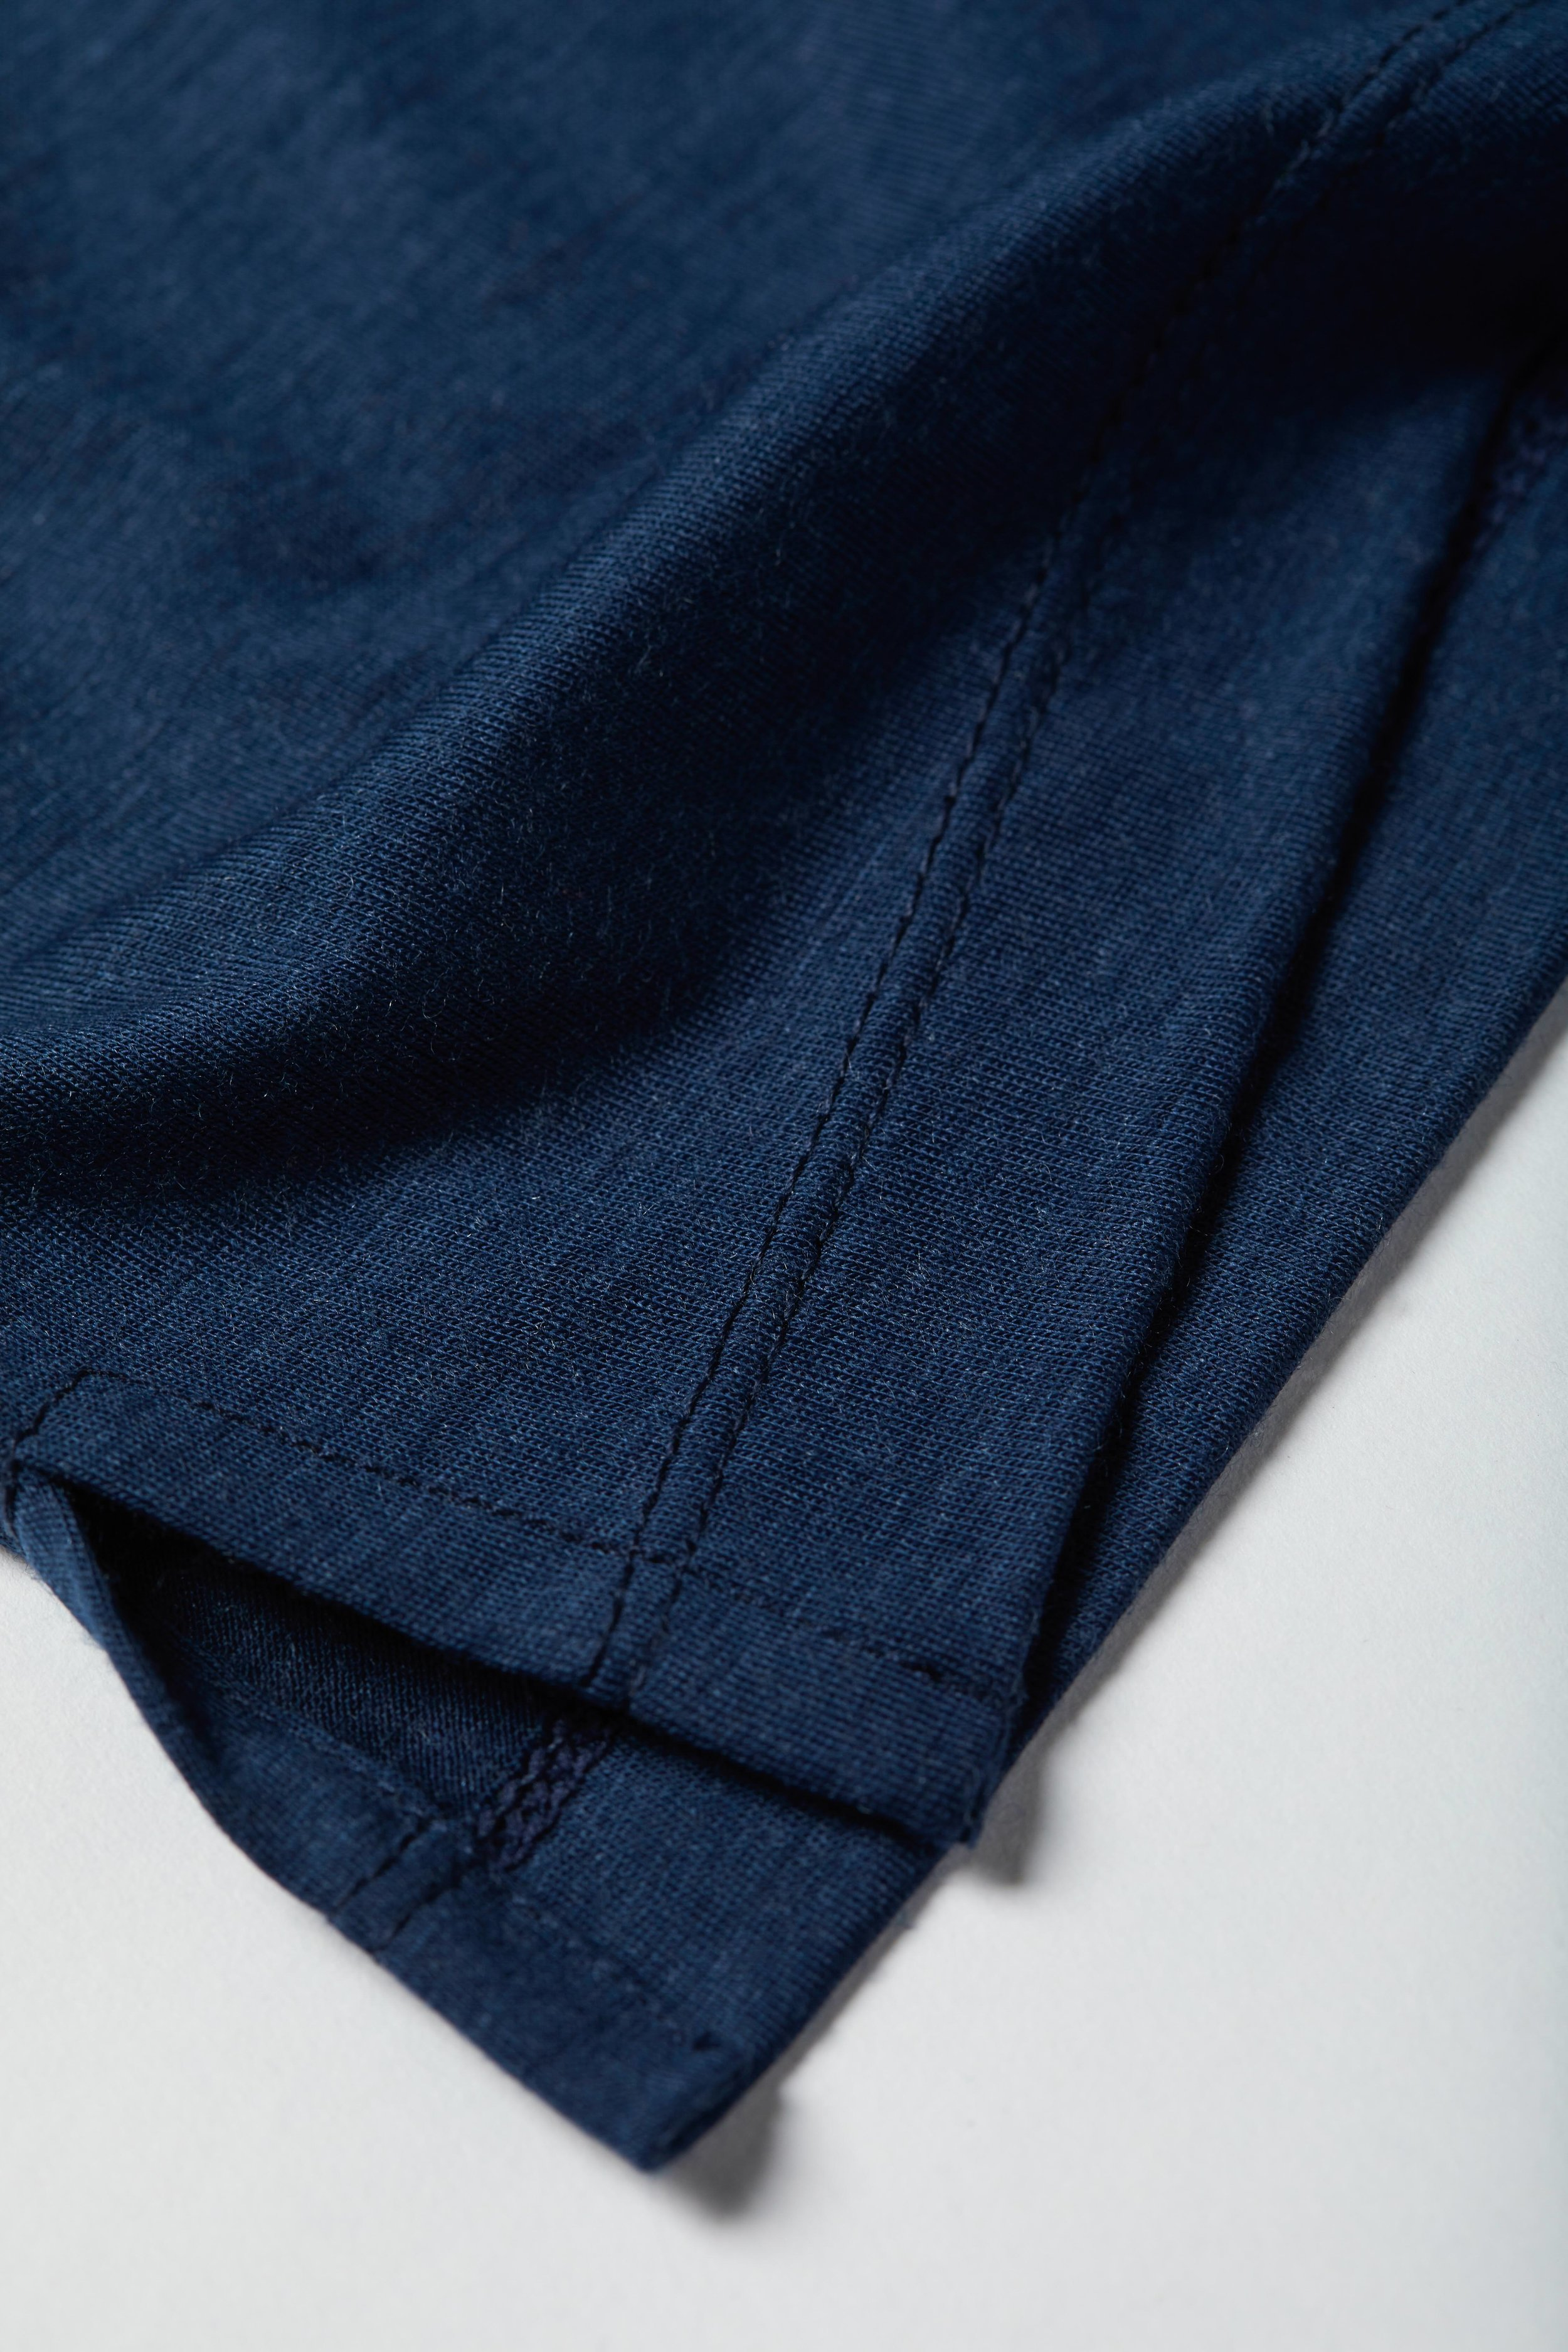 The Ramsie Golf Shirt - Indigo Merino Wool